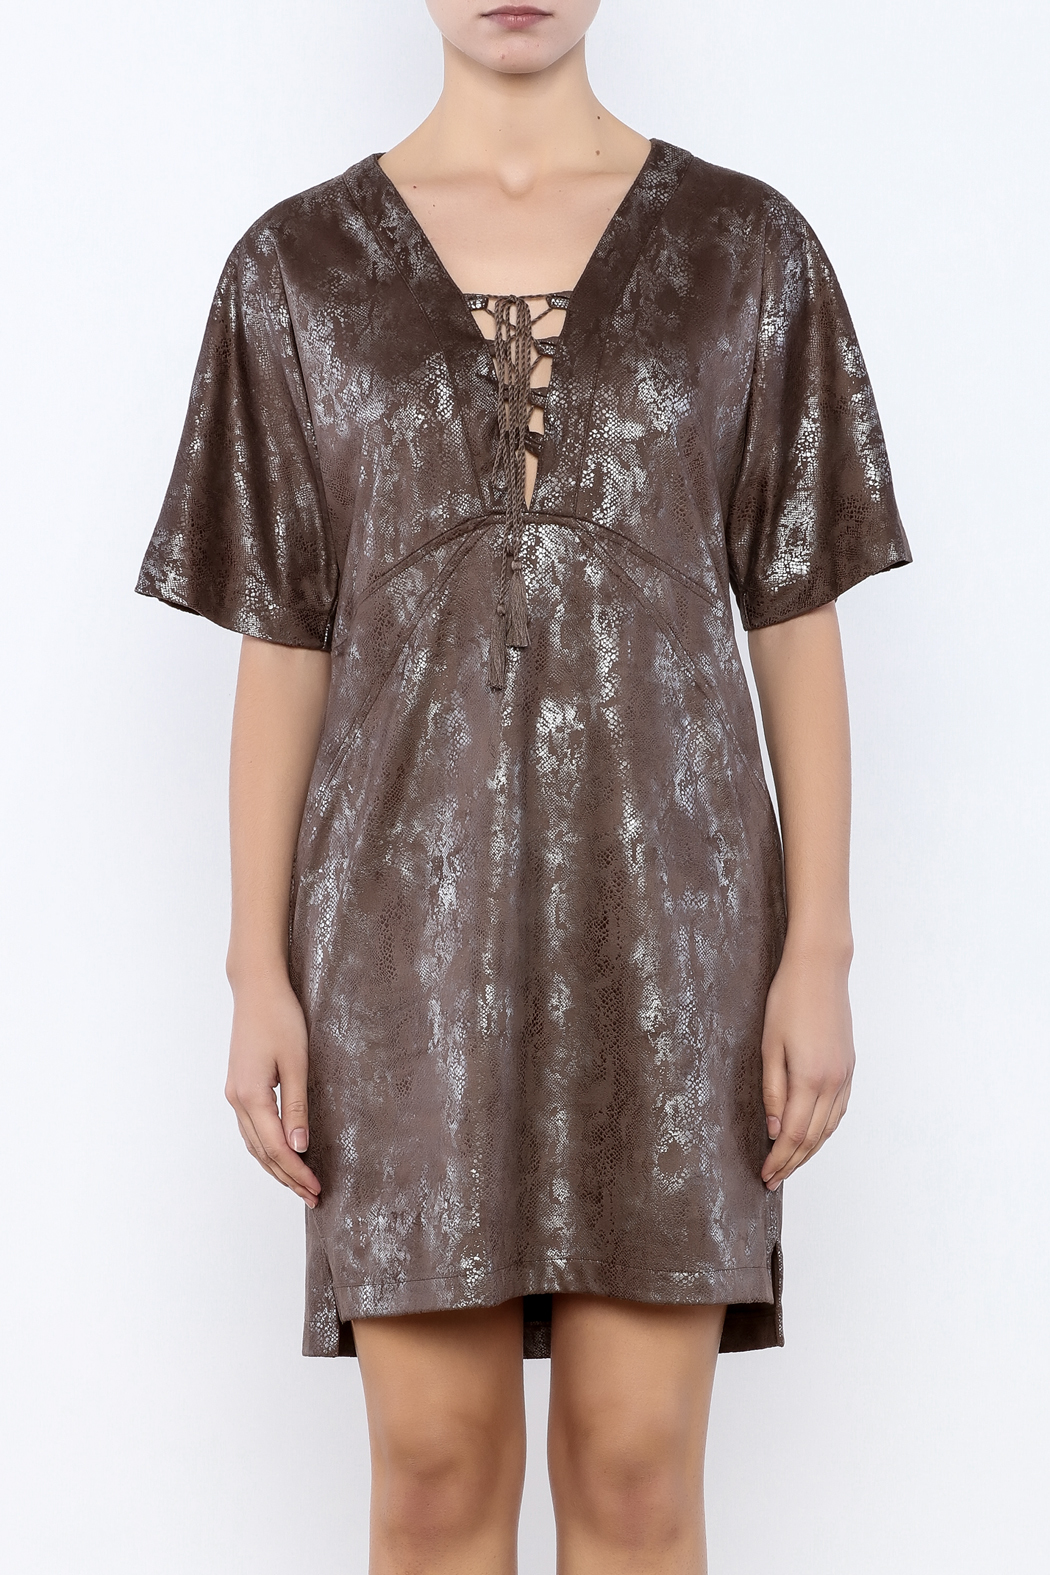 Ivy Jane / Uncle Frank  Polly Python Dress - Side Cropped Image